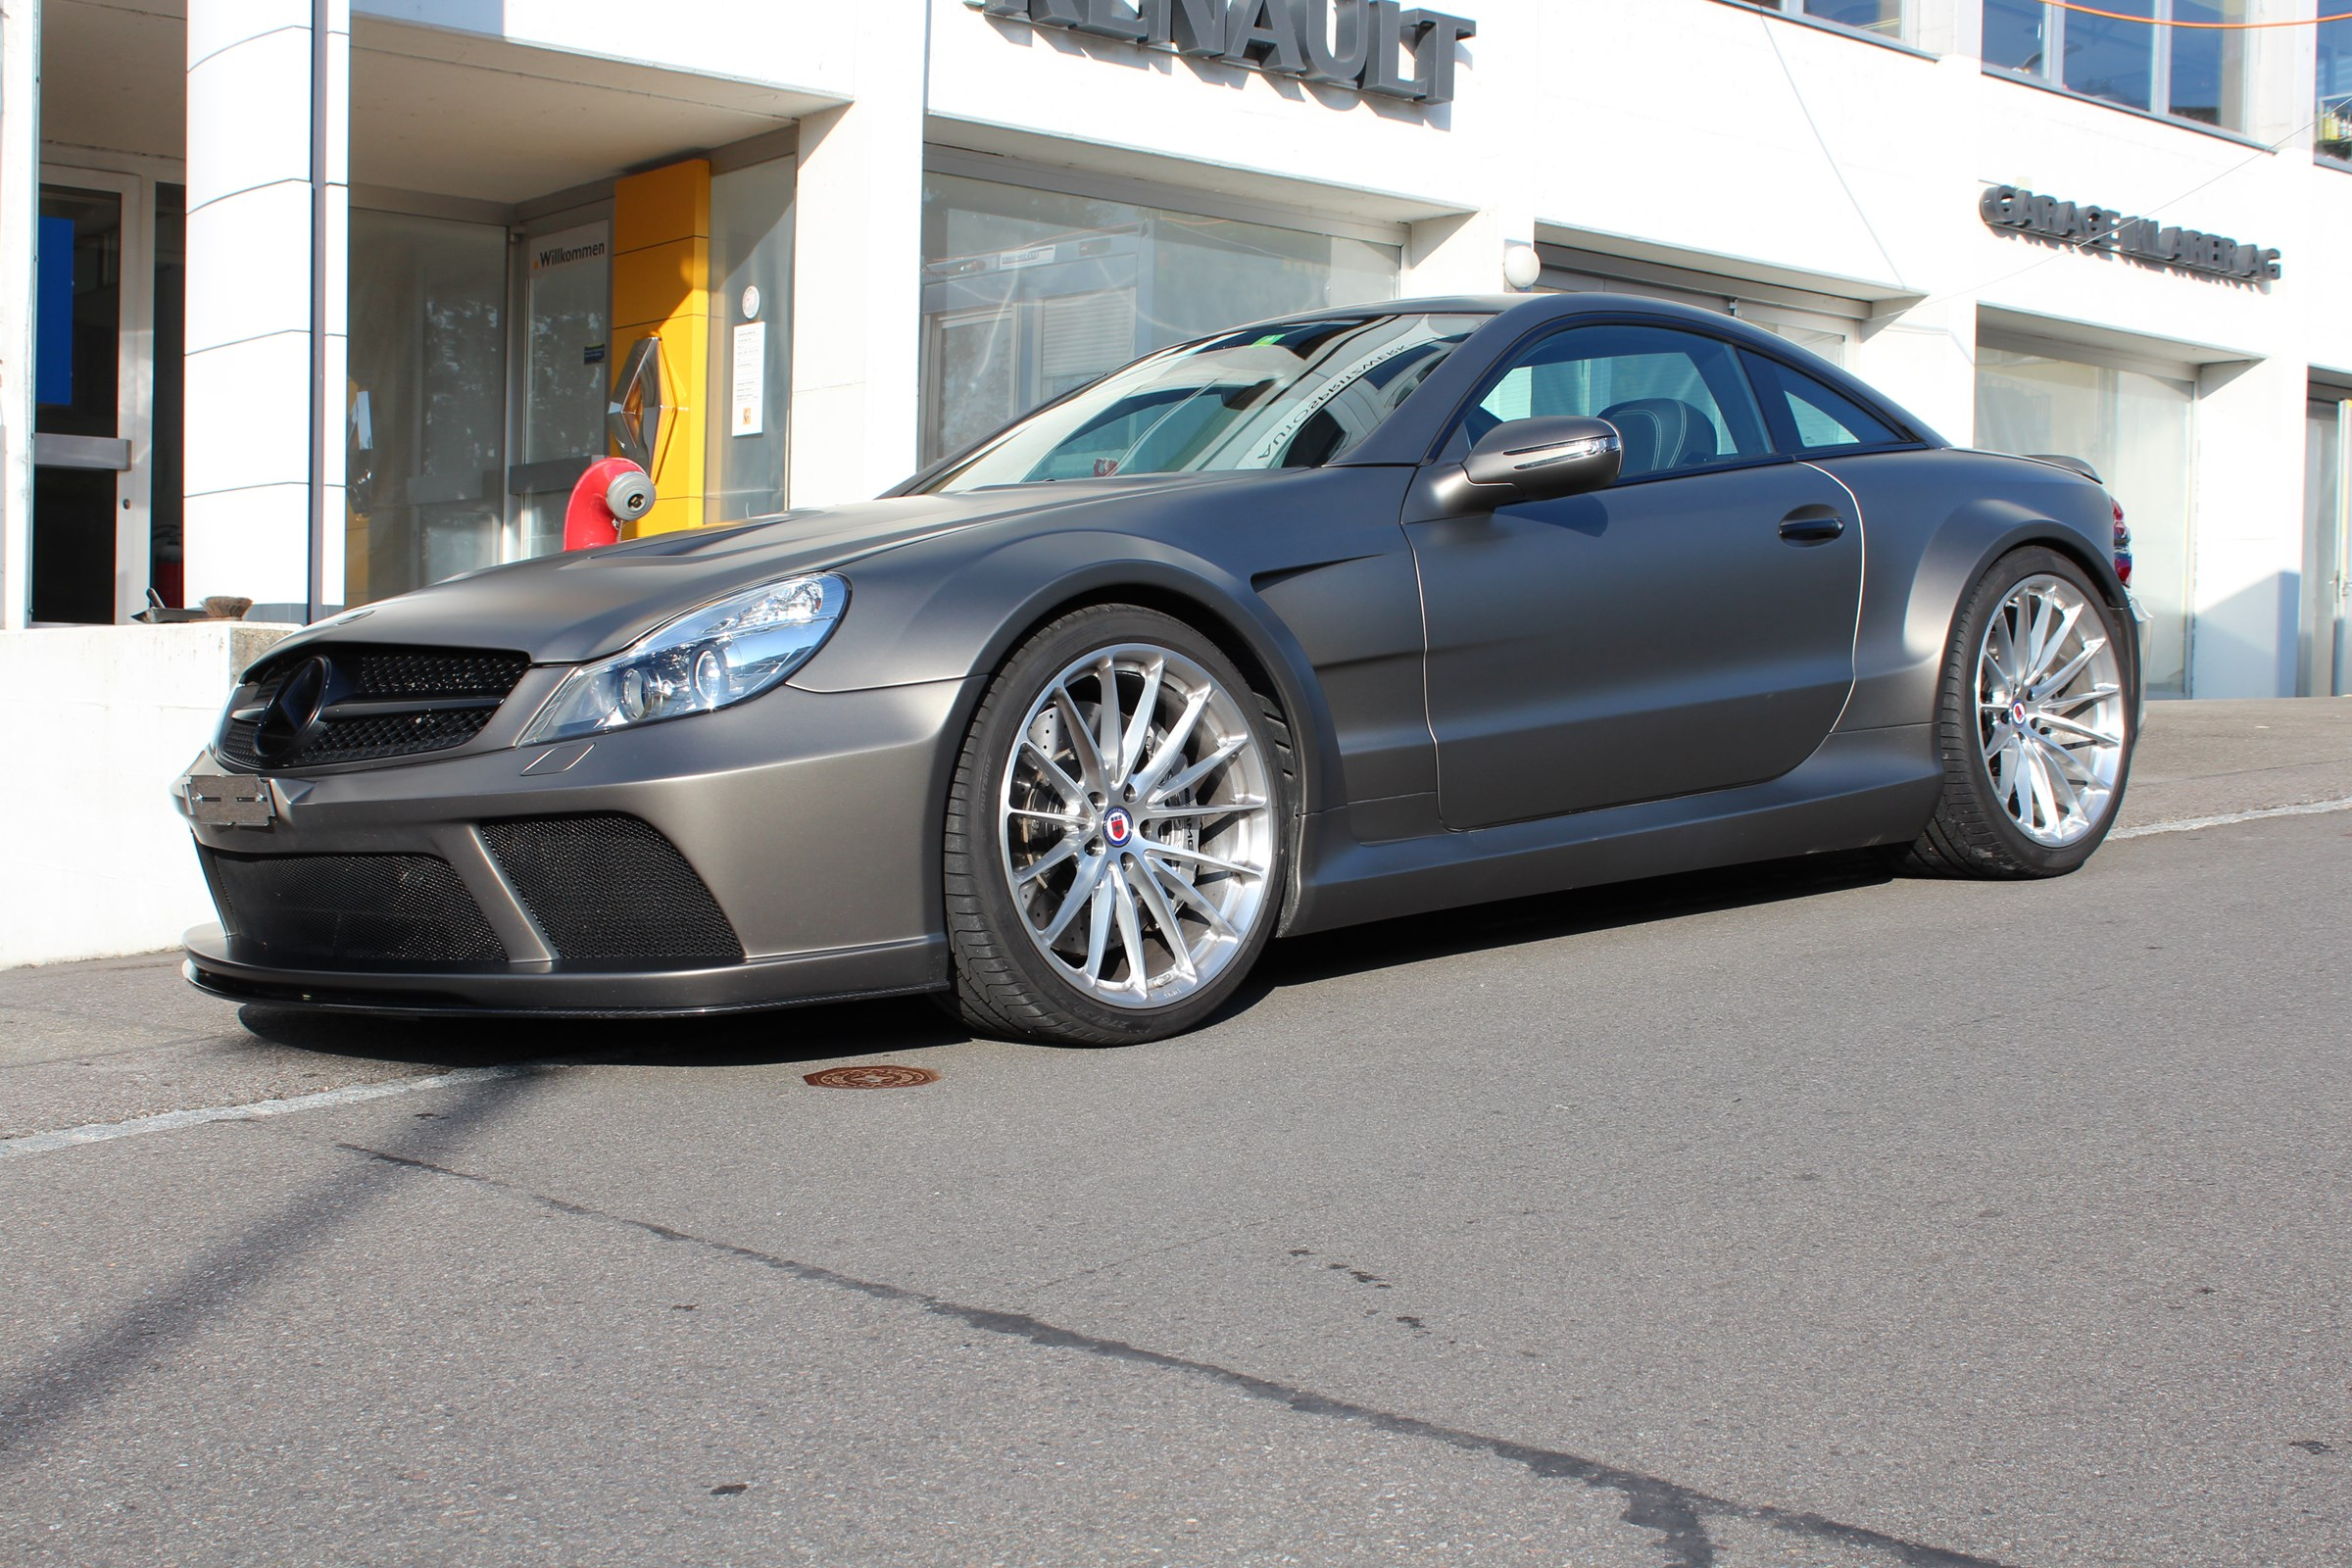 coupe Mercedes-Benz SL 65 AMG BLACK SERIES 1 of 175